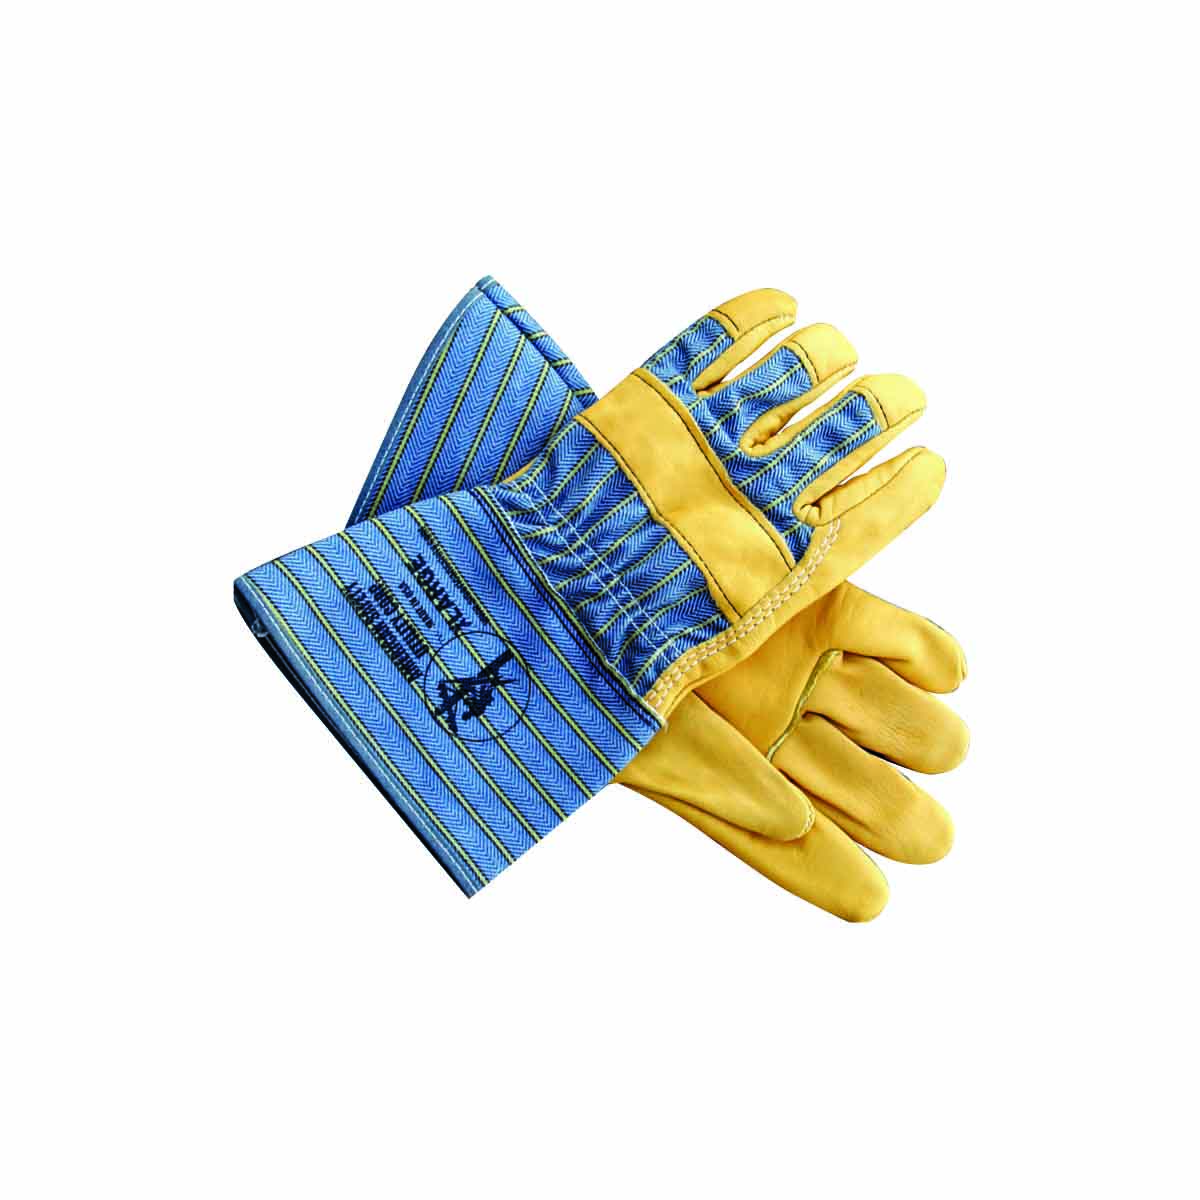 American Safety Top Grain Leather Palm Gloves 2